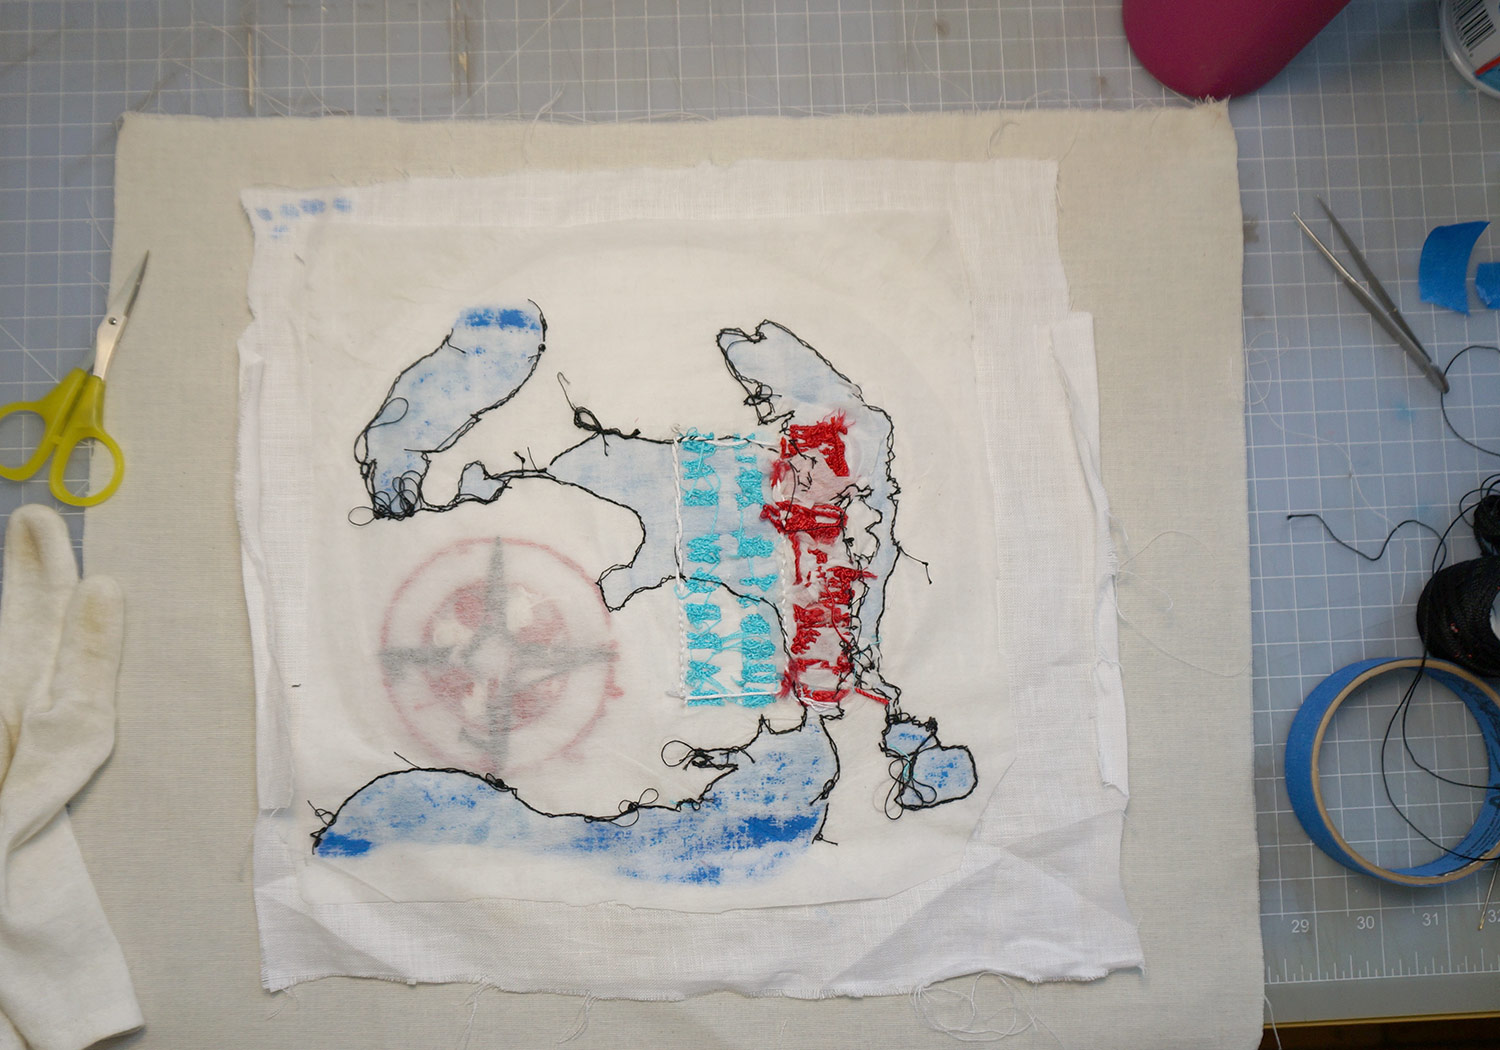 The back of the embroidery